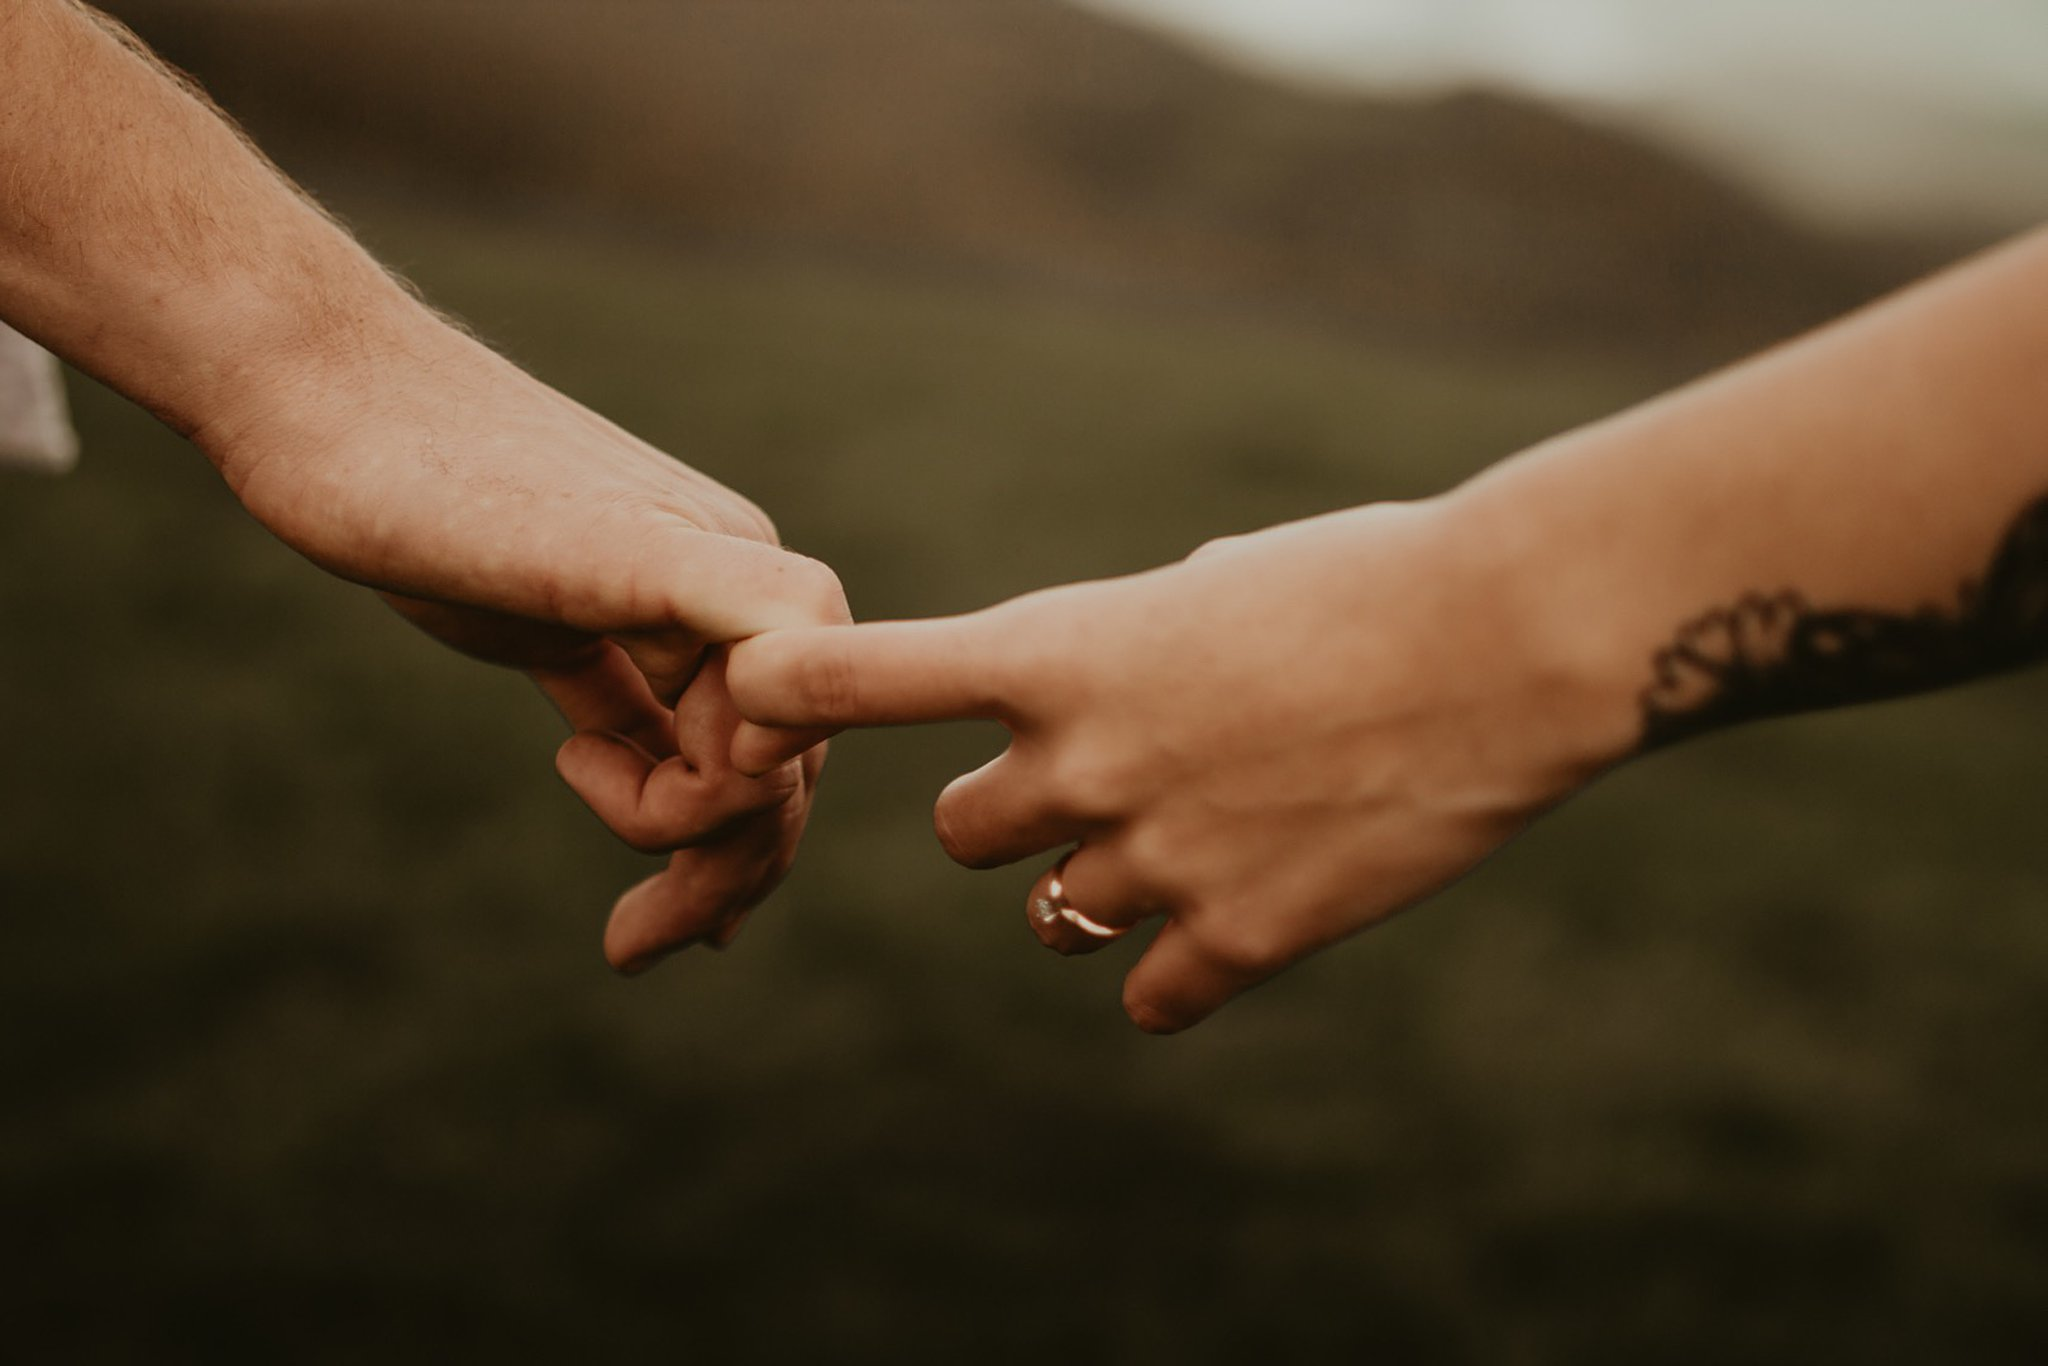 engagement picture of hands and ring